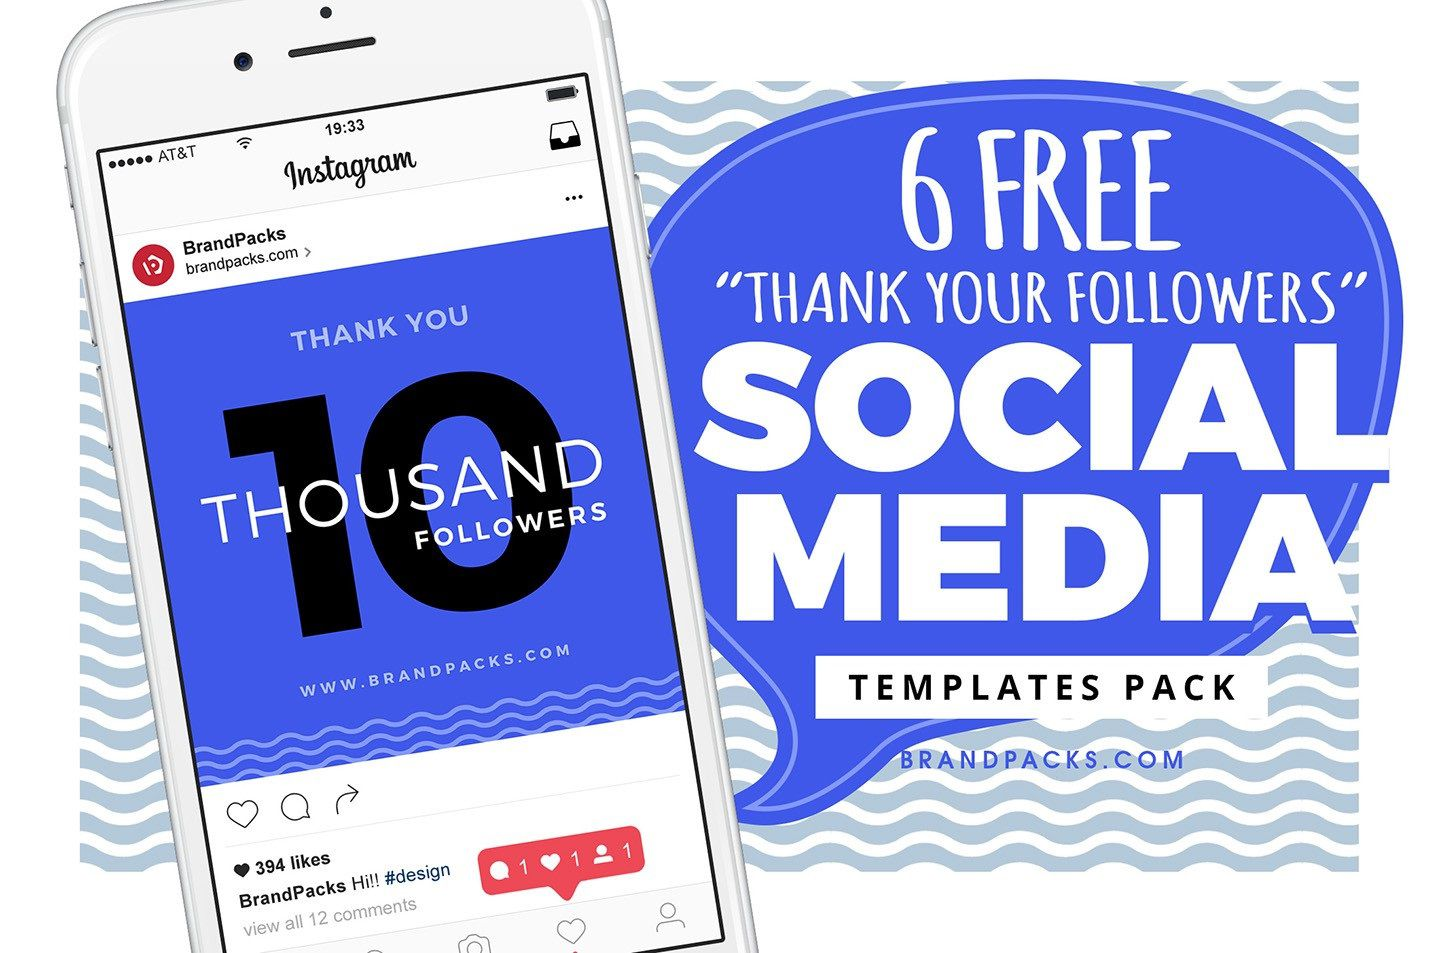 002 Unforgettable Free Social Media Template High Resolution  Templates Website Design Post Download For PowerpointFull